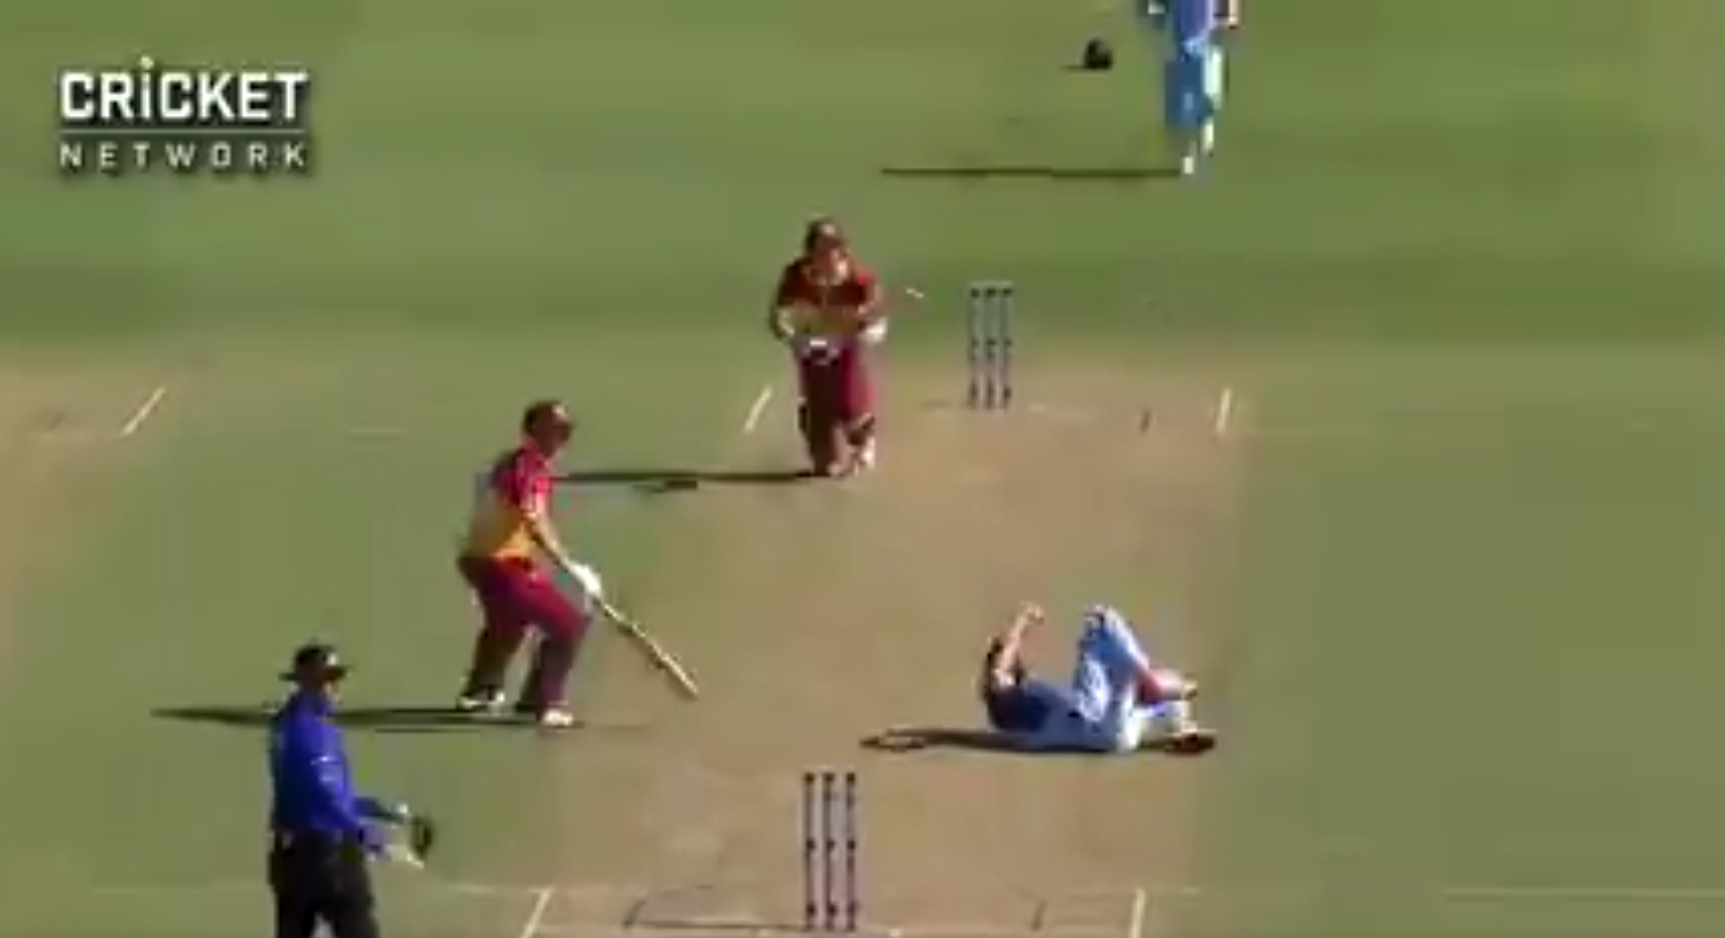 WATCH- Mickey Edwards Escapes From Serious Injury While Bowling